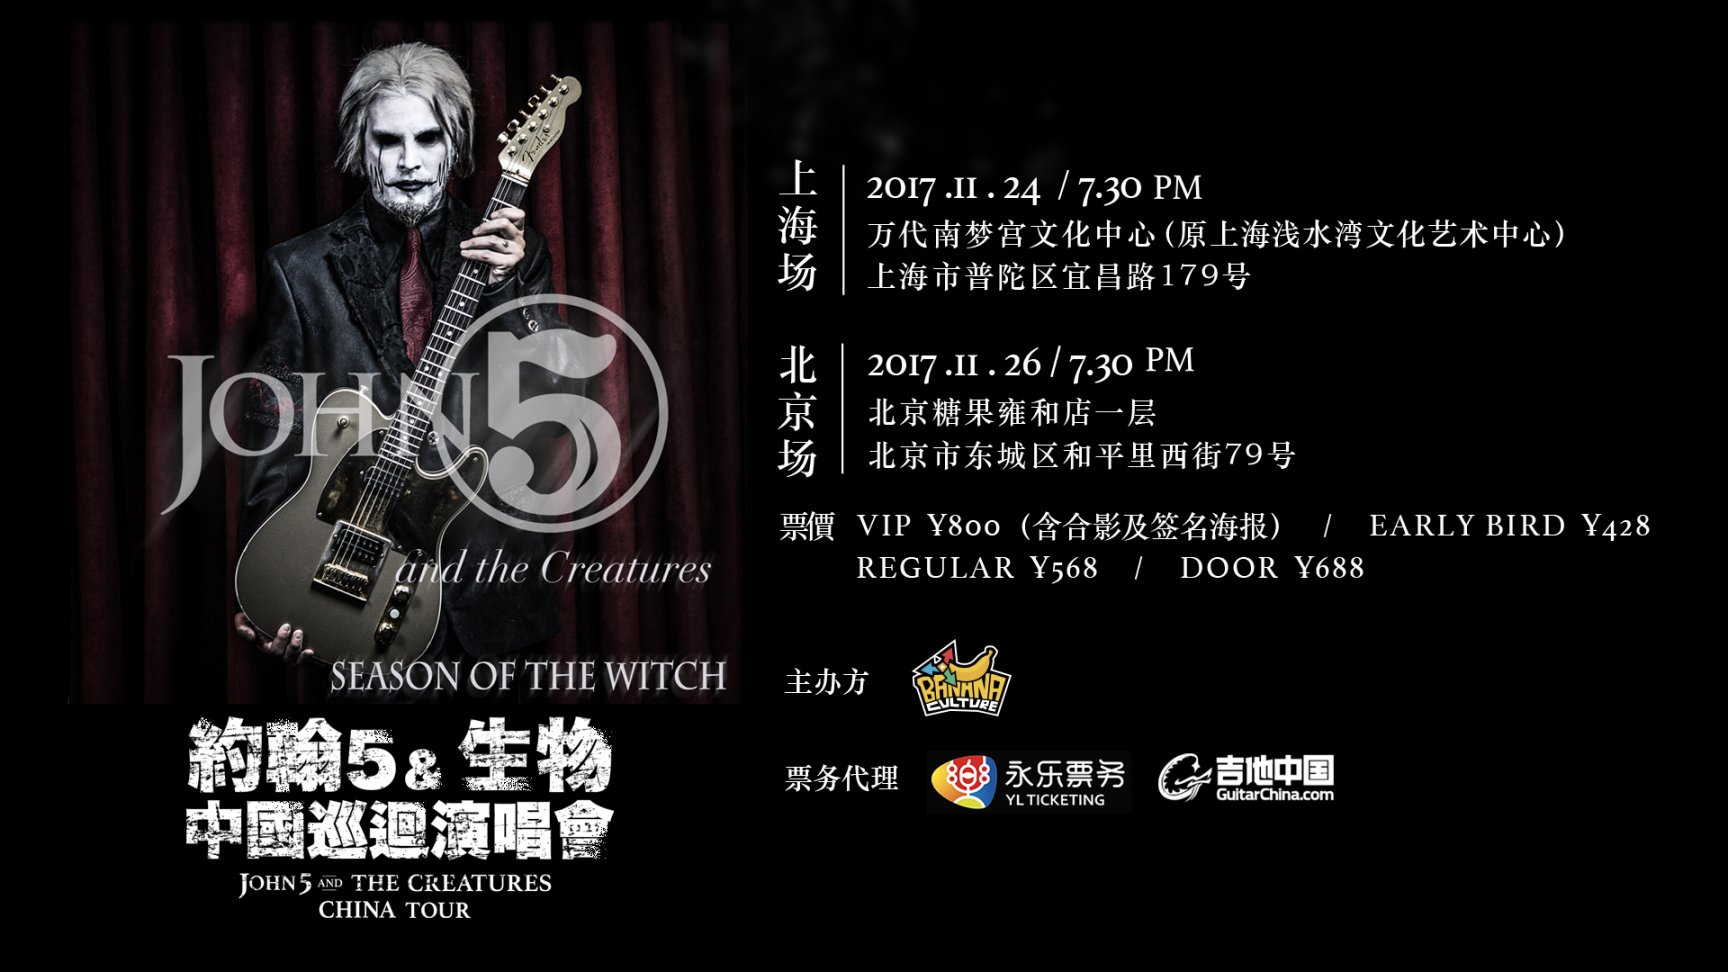 John5 and the Creatures世界巡演京沪站